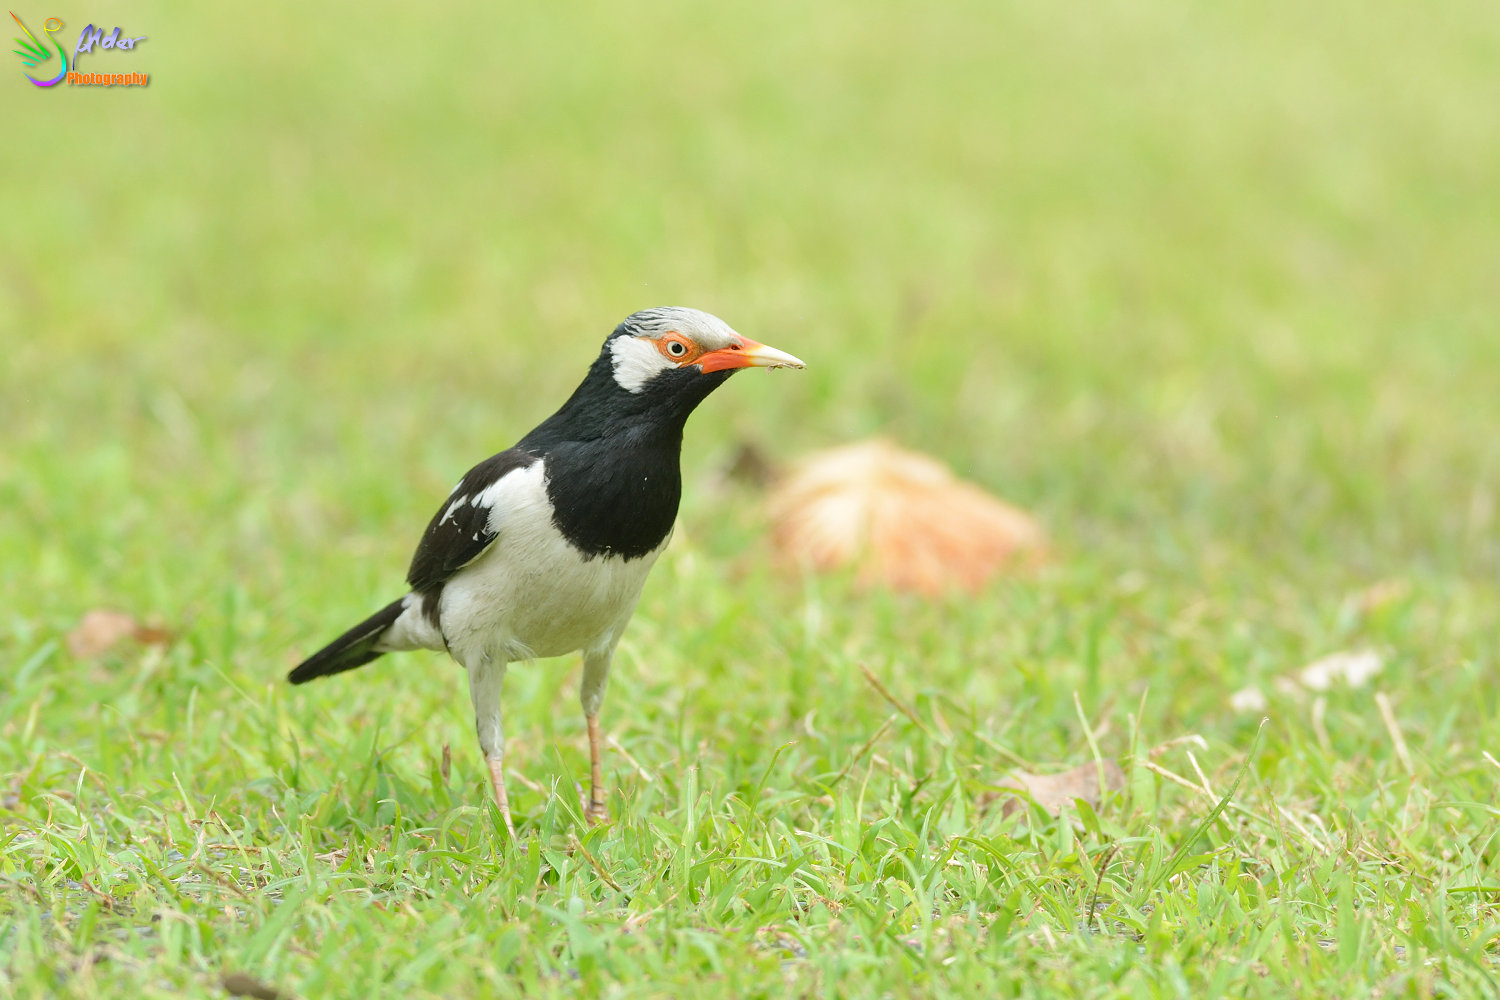 Asian_Pied_Starling_1507